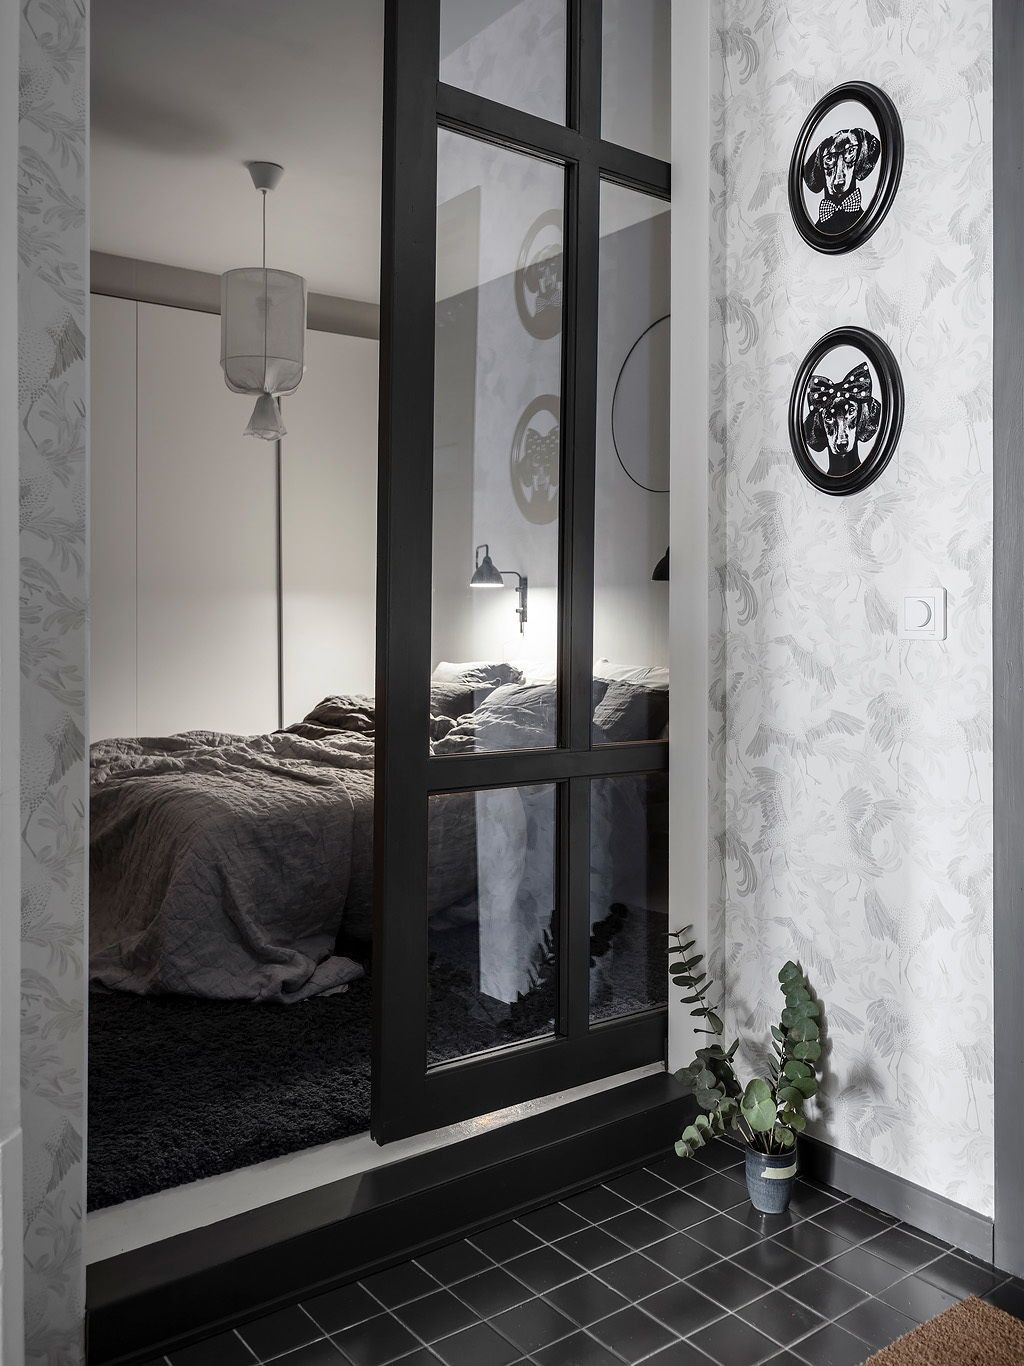 Glass Partition Designs for Home Inspirational Hight Contrast Home with Glass Partitions